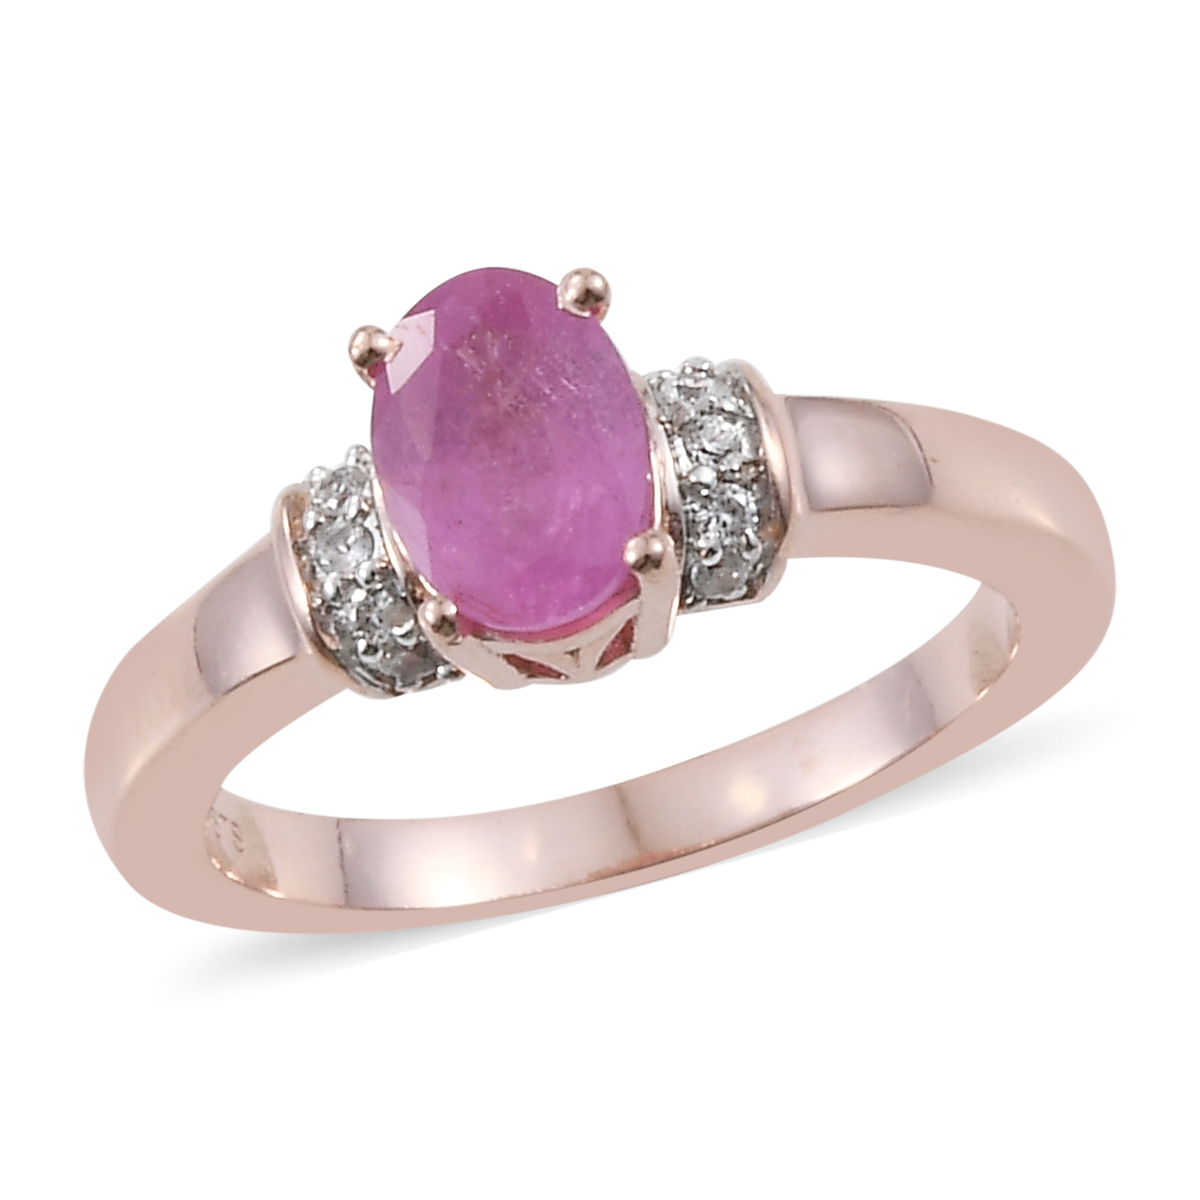 Ilakaka Hot Pink Sapphire, Cambodian Zircon Ring in Vermeil RG Over Sterling Silver (Size 9.0) 1.15 ctw